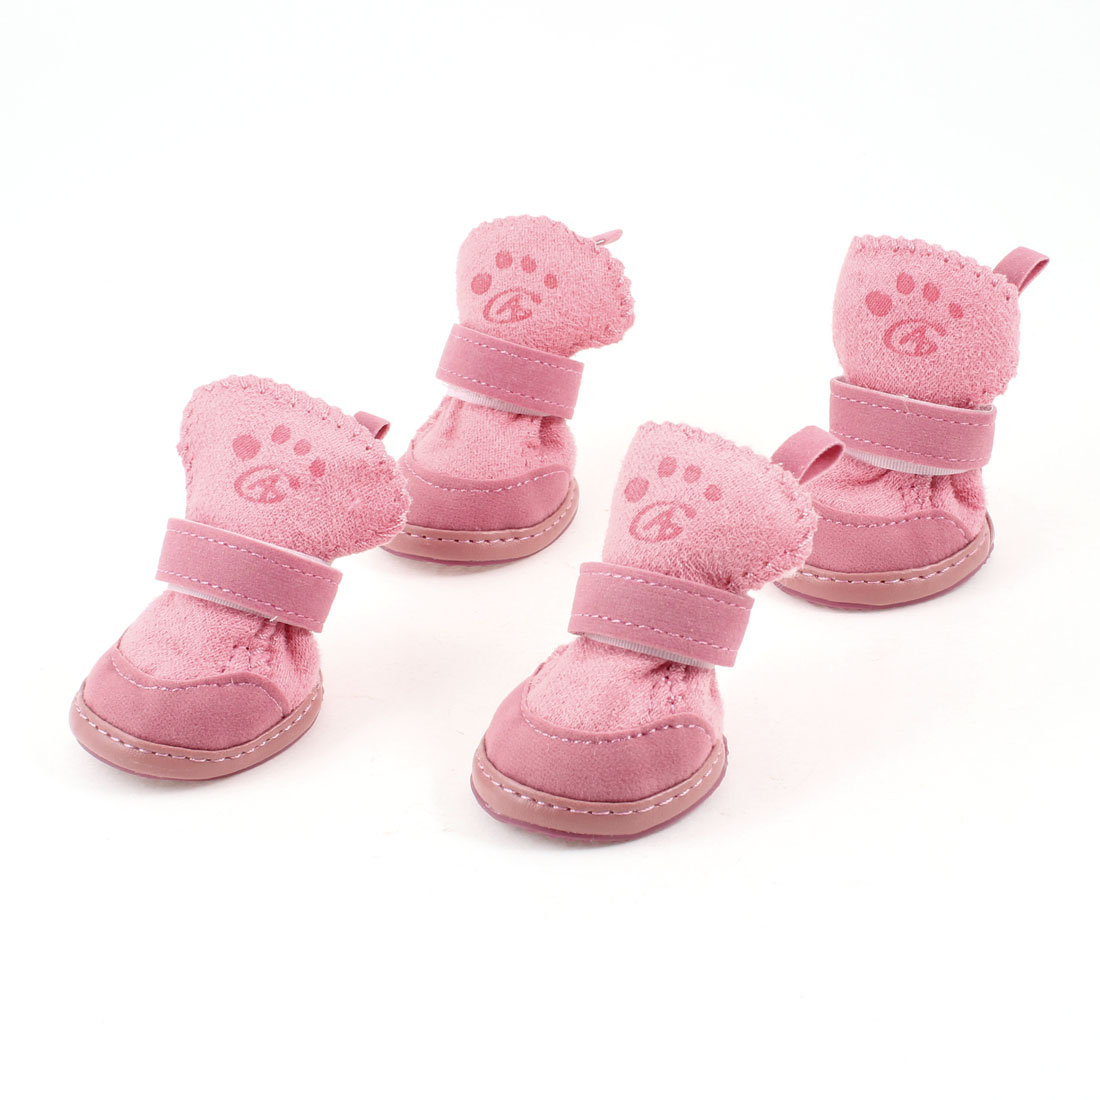 Pink Hook and Loop Fastener Booties Pet Dog Chihuahua Shoes Boots 2 Pair S